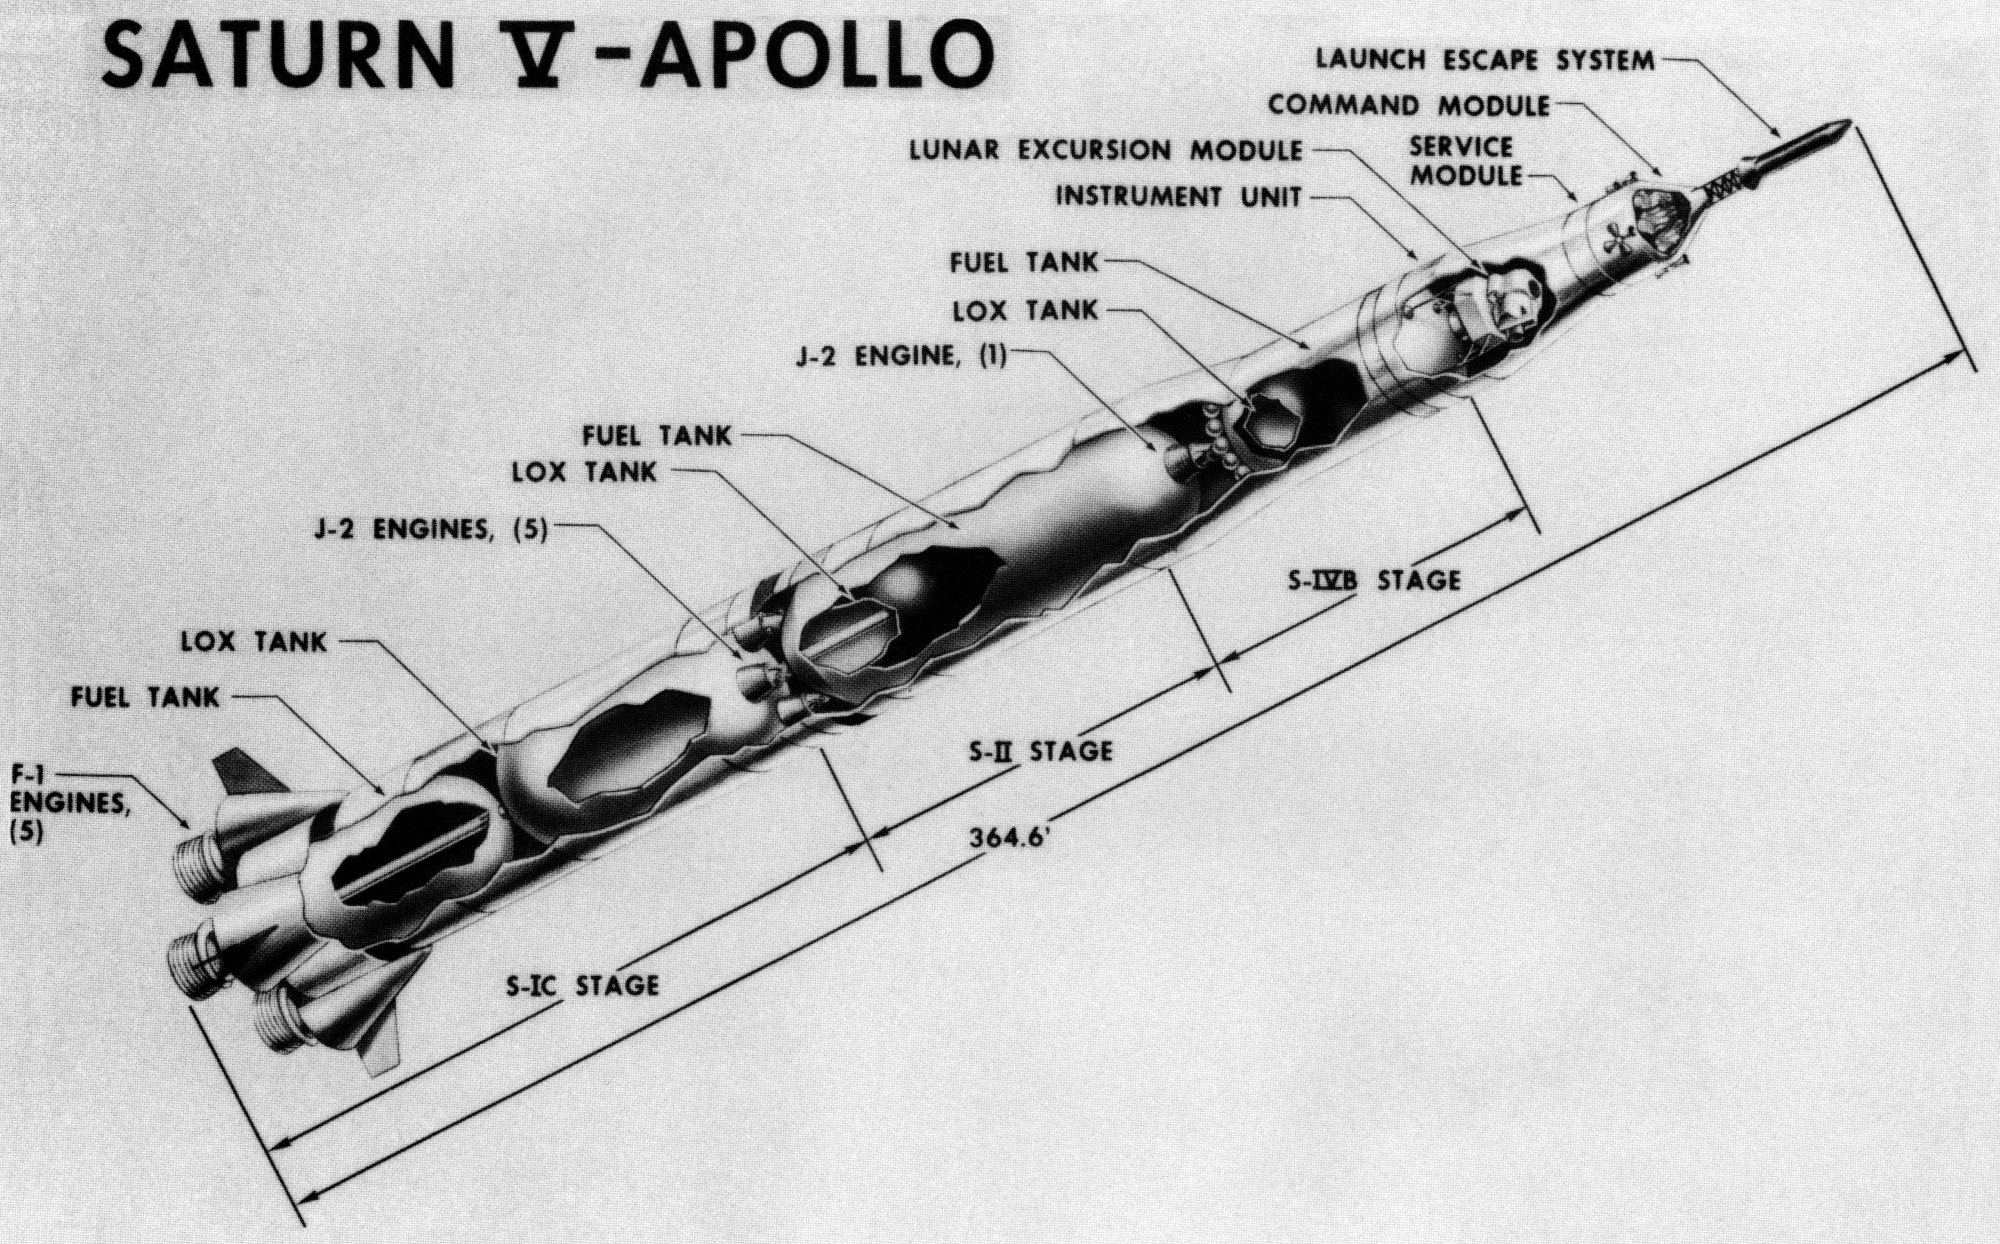 hight resolution of saturn v launch vehicle diagram with the stages called out